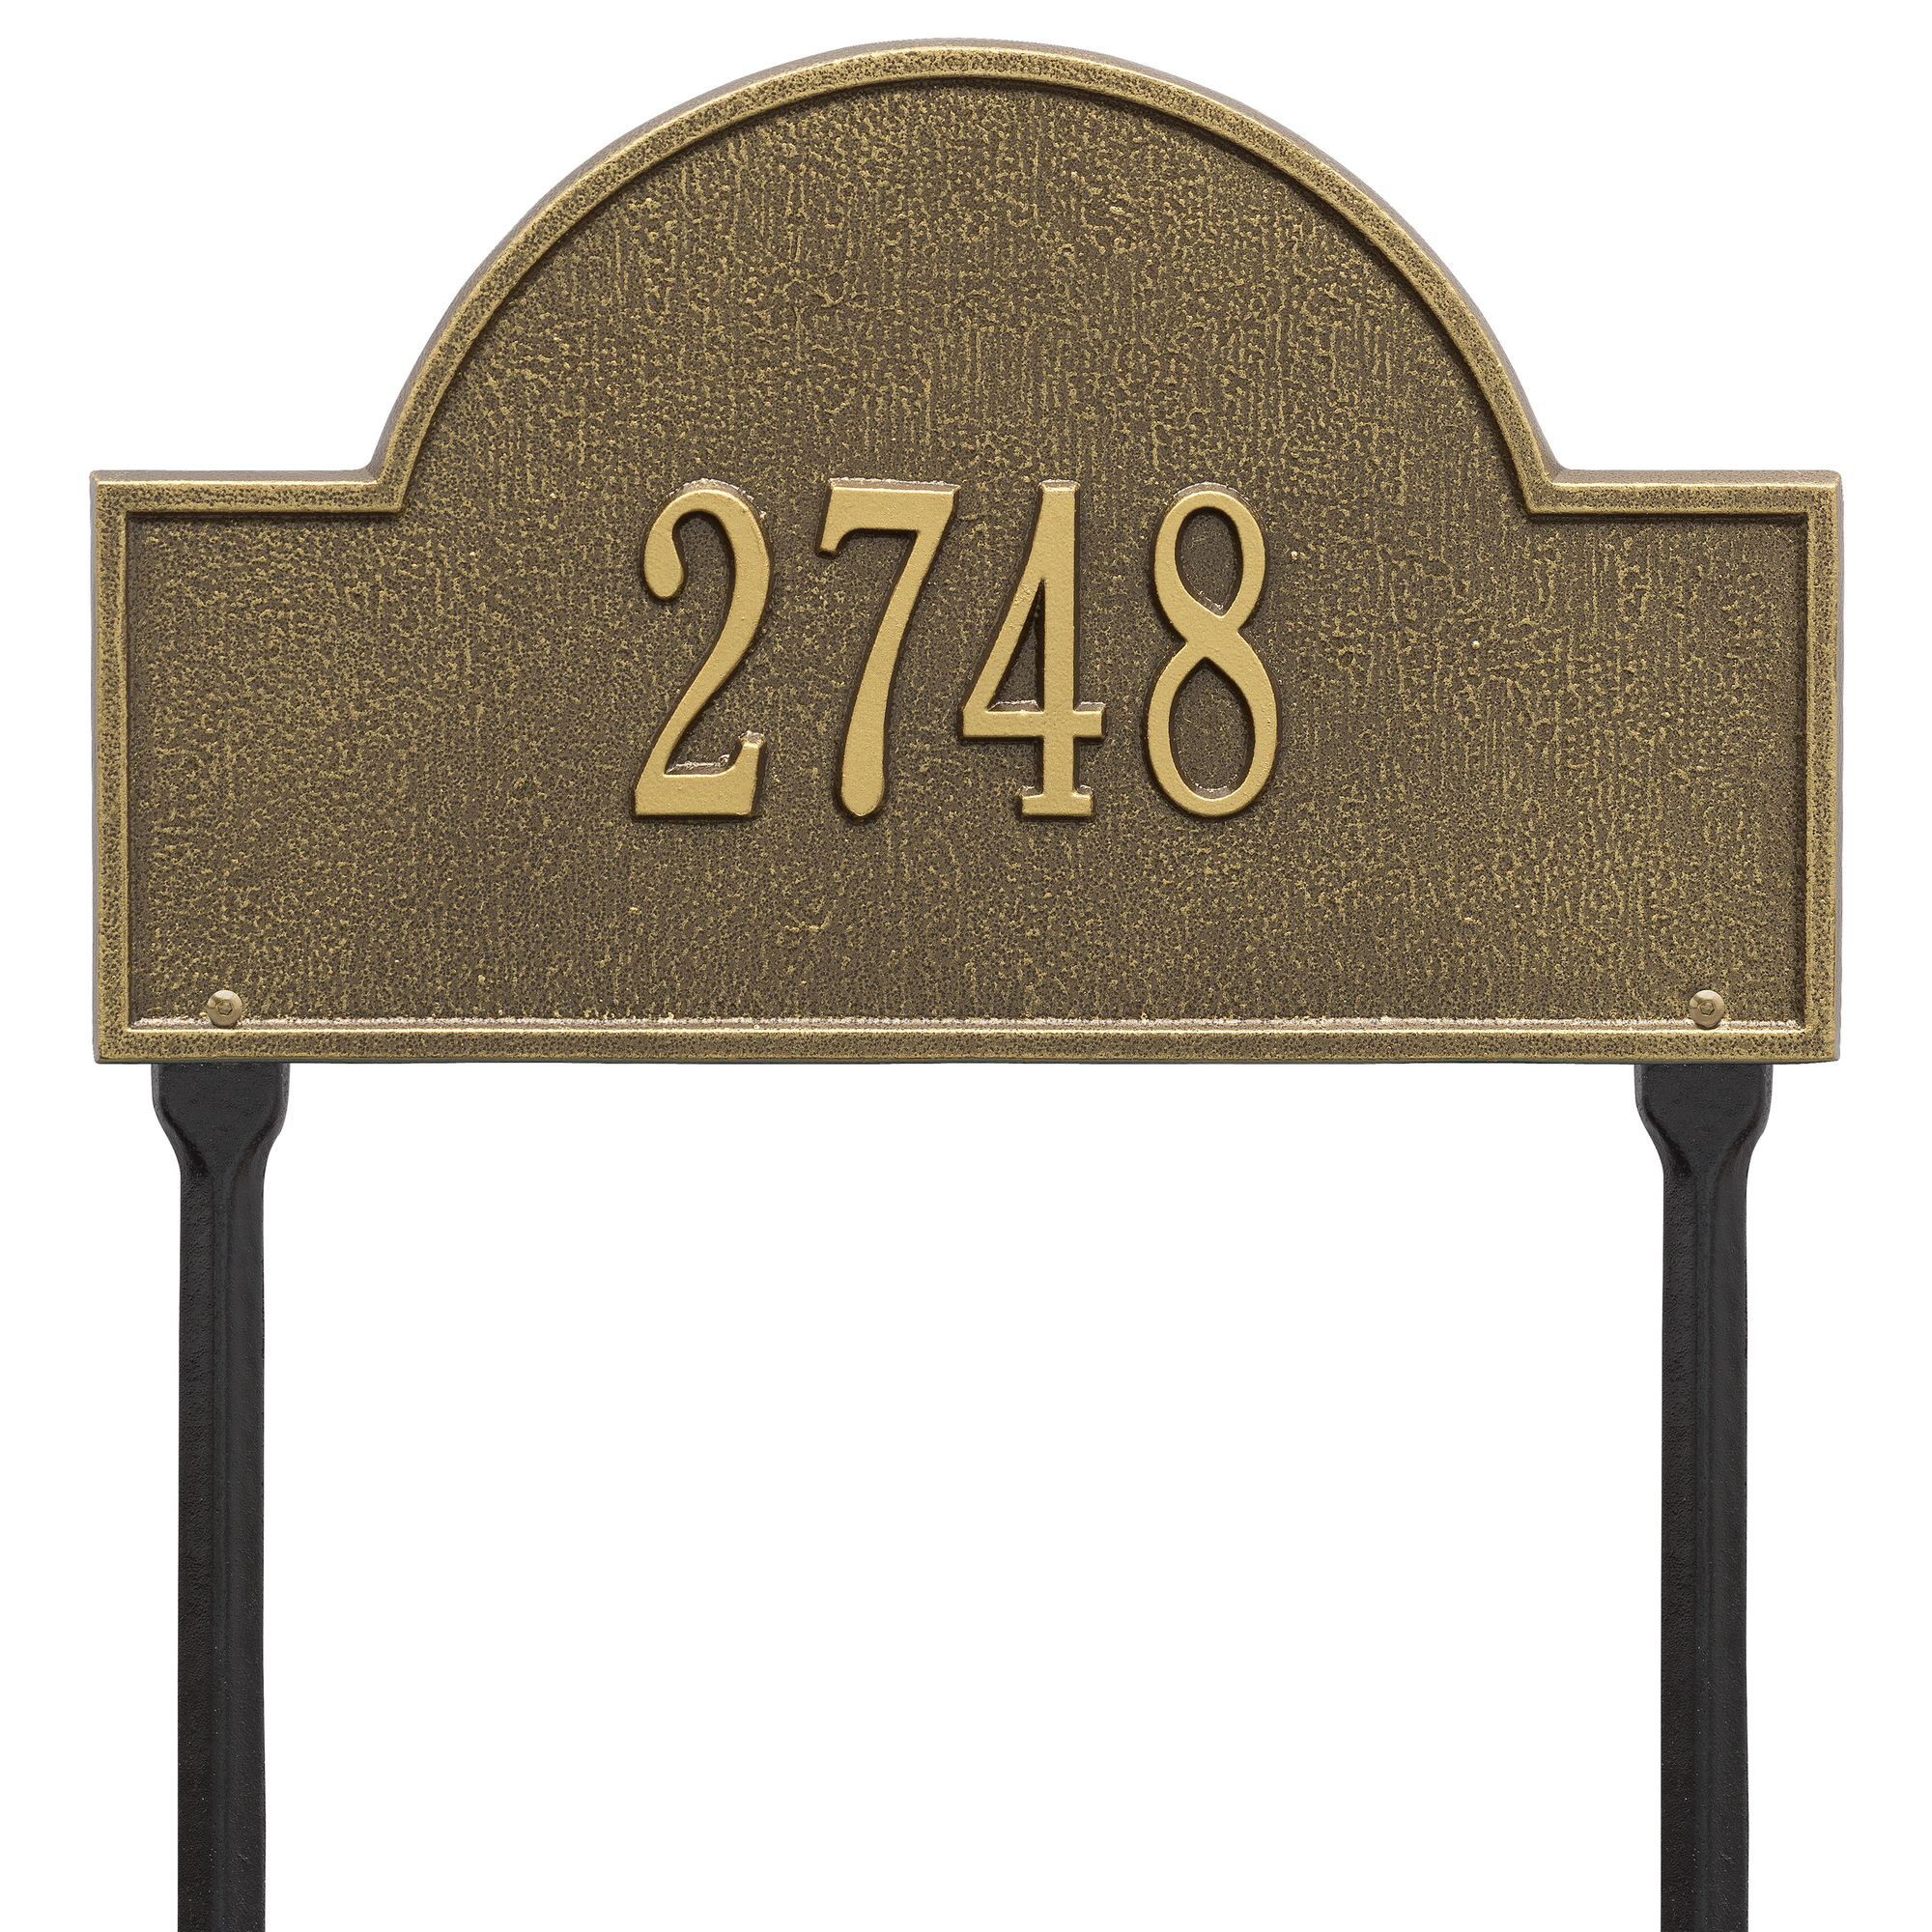 Personalized Whitehall Products 15-Inch Arch Marker Address Plaque in Antique Brass